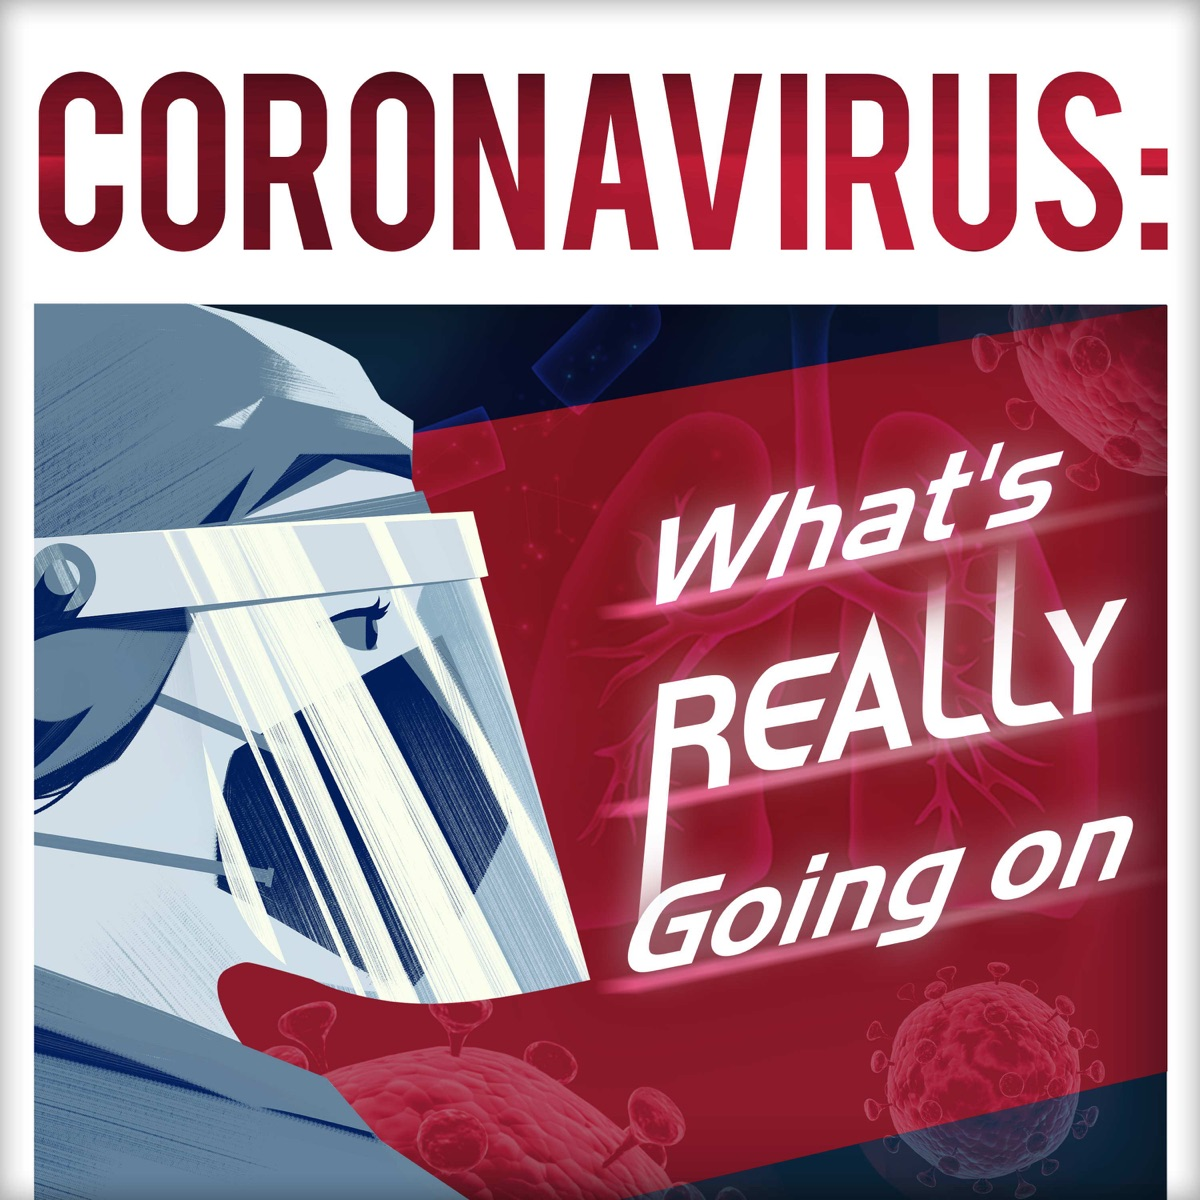 Coronavirus: What's REALLY Going On